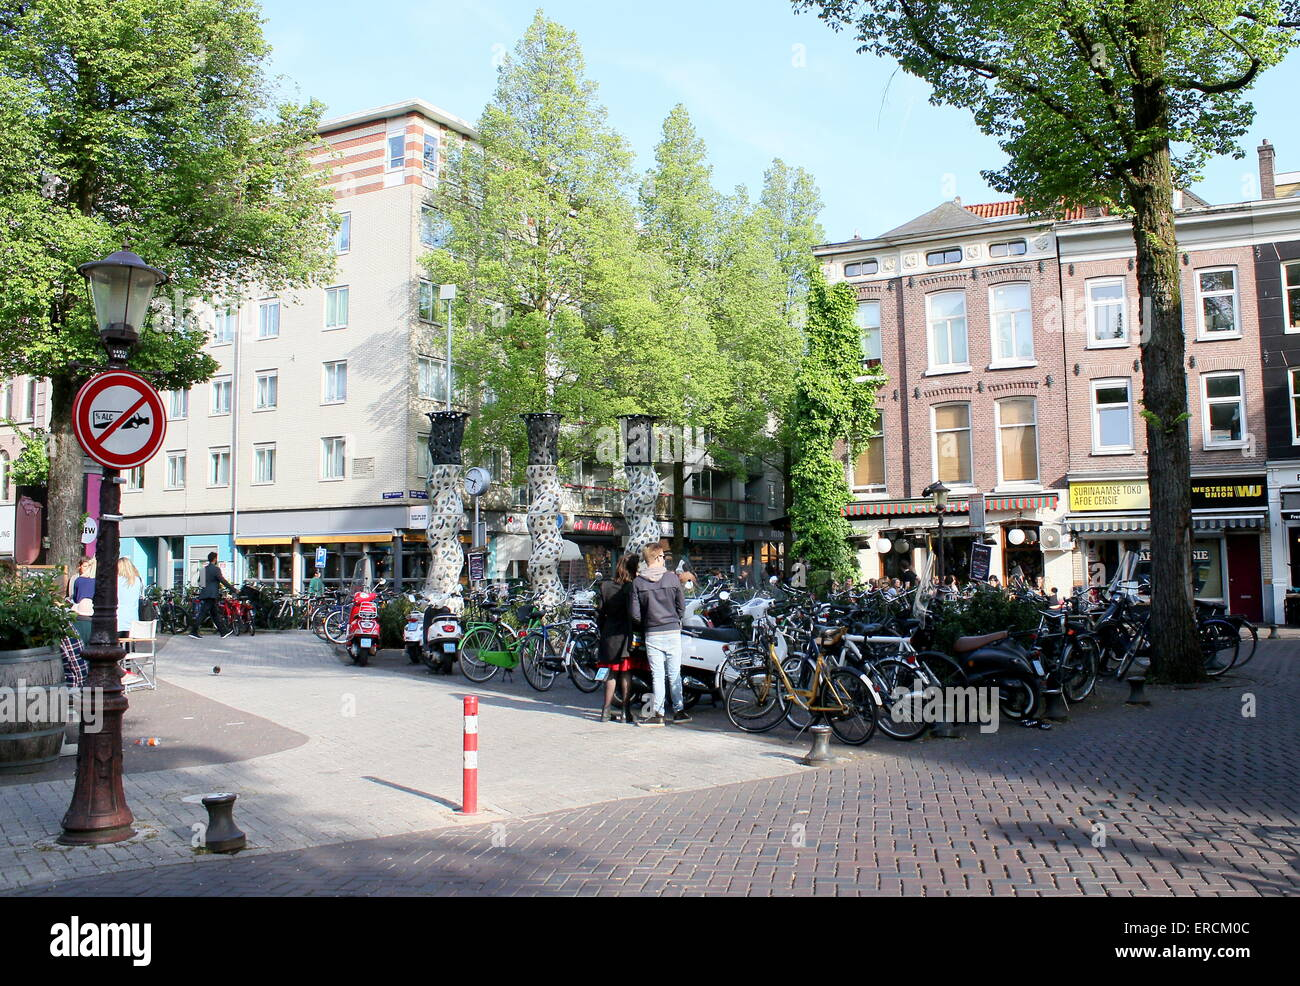 People  wining and dining on a summer evening at Gerard Douplein, de Pijp district, Amsterdam - Stock Image